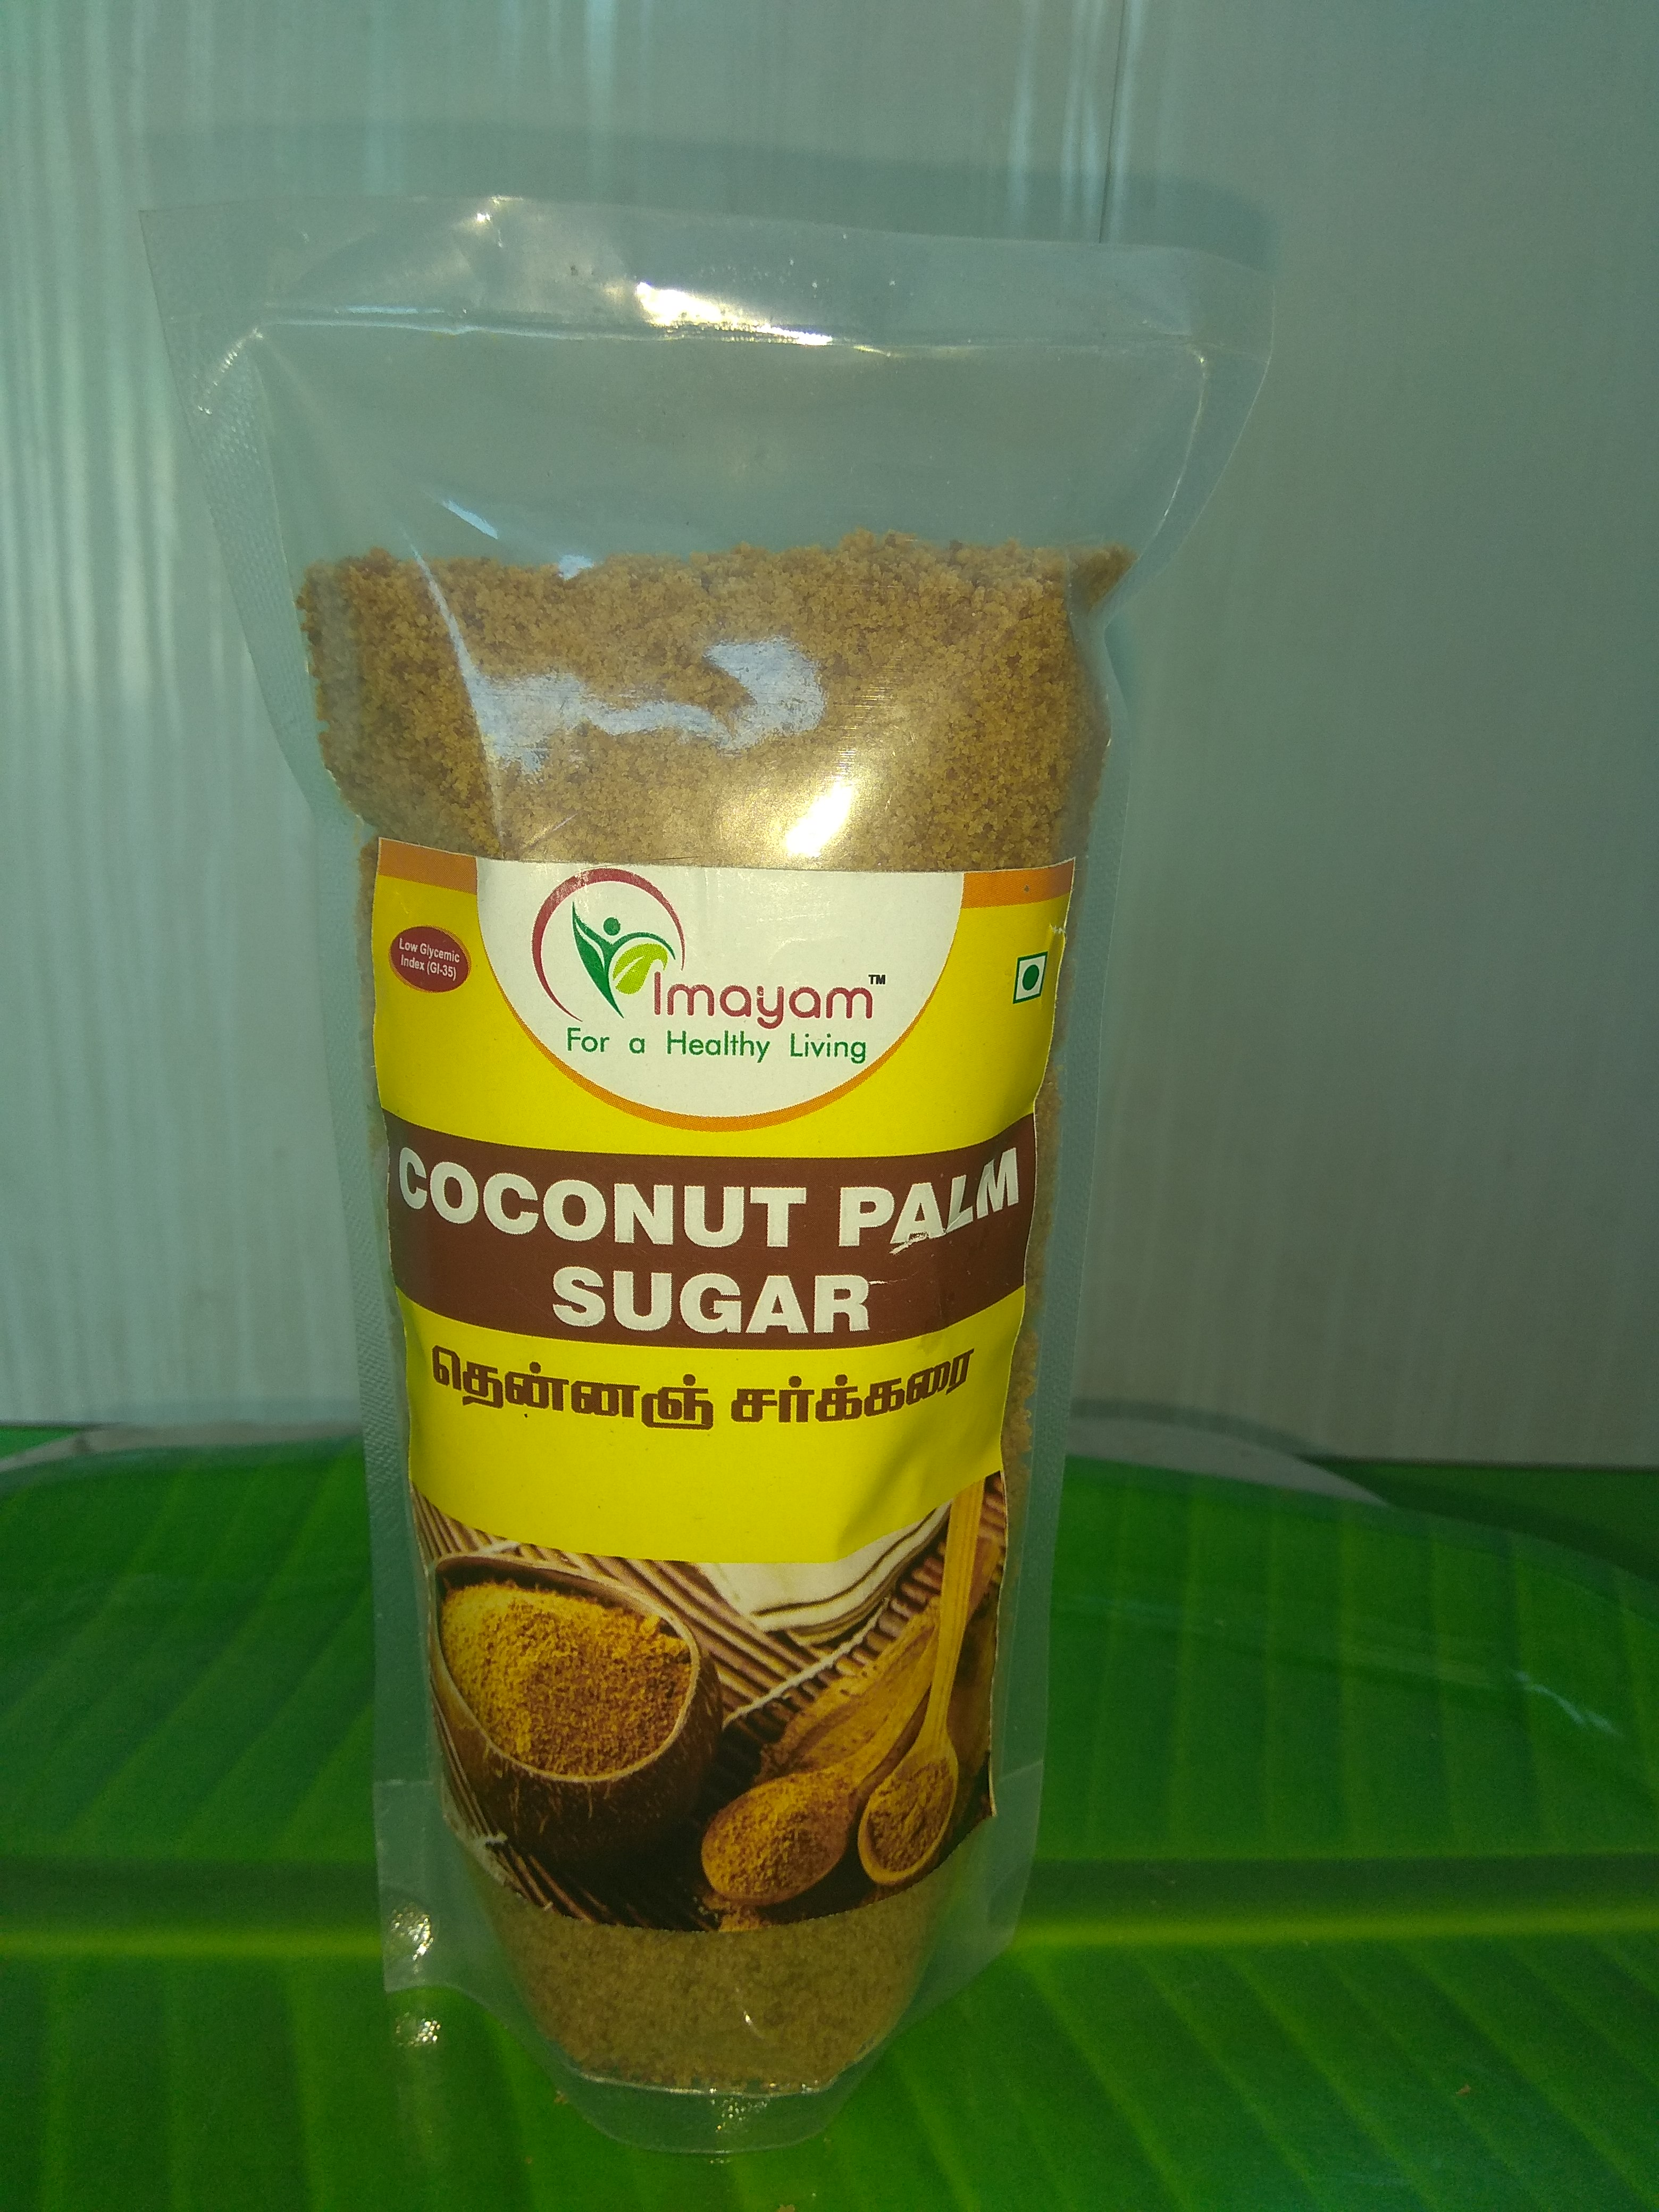 Unrefined Sugar. Rich in Vitamins and Minerals. Made from the sap collected from flower buds cut from coconut palm. Controls blood sugar level.